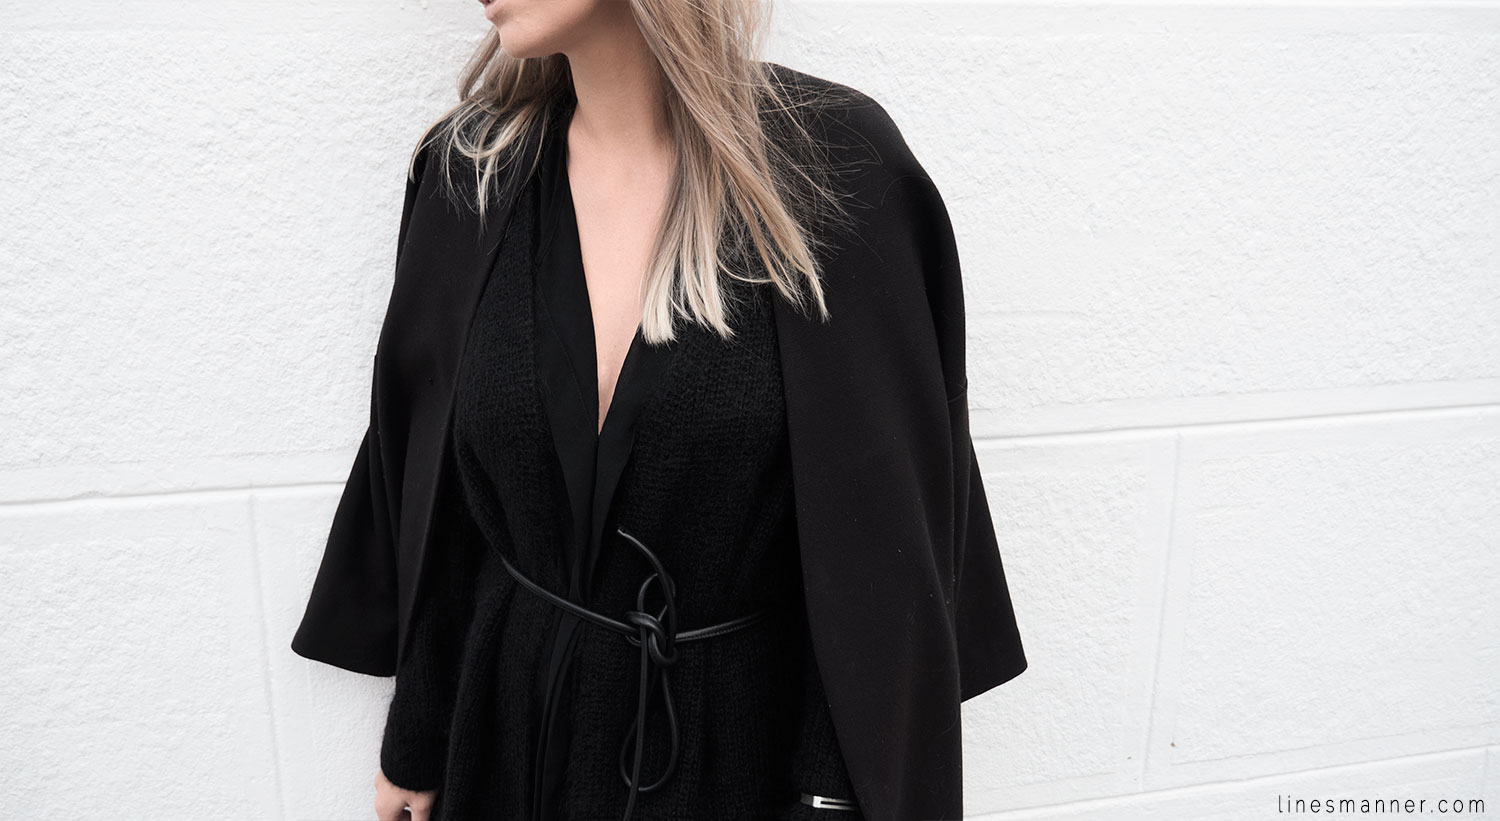 Lines-Manner-Timeless-Comfort-Essentials-Monochrome-Trend-Minimal-Textures-Oversized-Warm-Fall-Leather-Details-Simplicity-Modern-Basics-Outfit-Structure-9